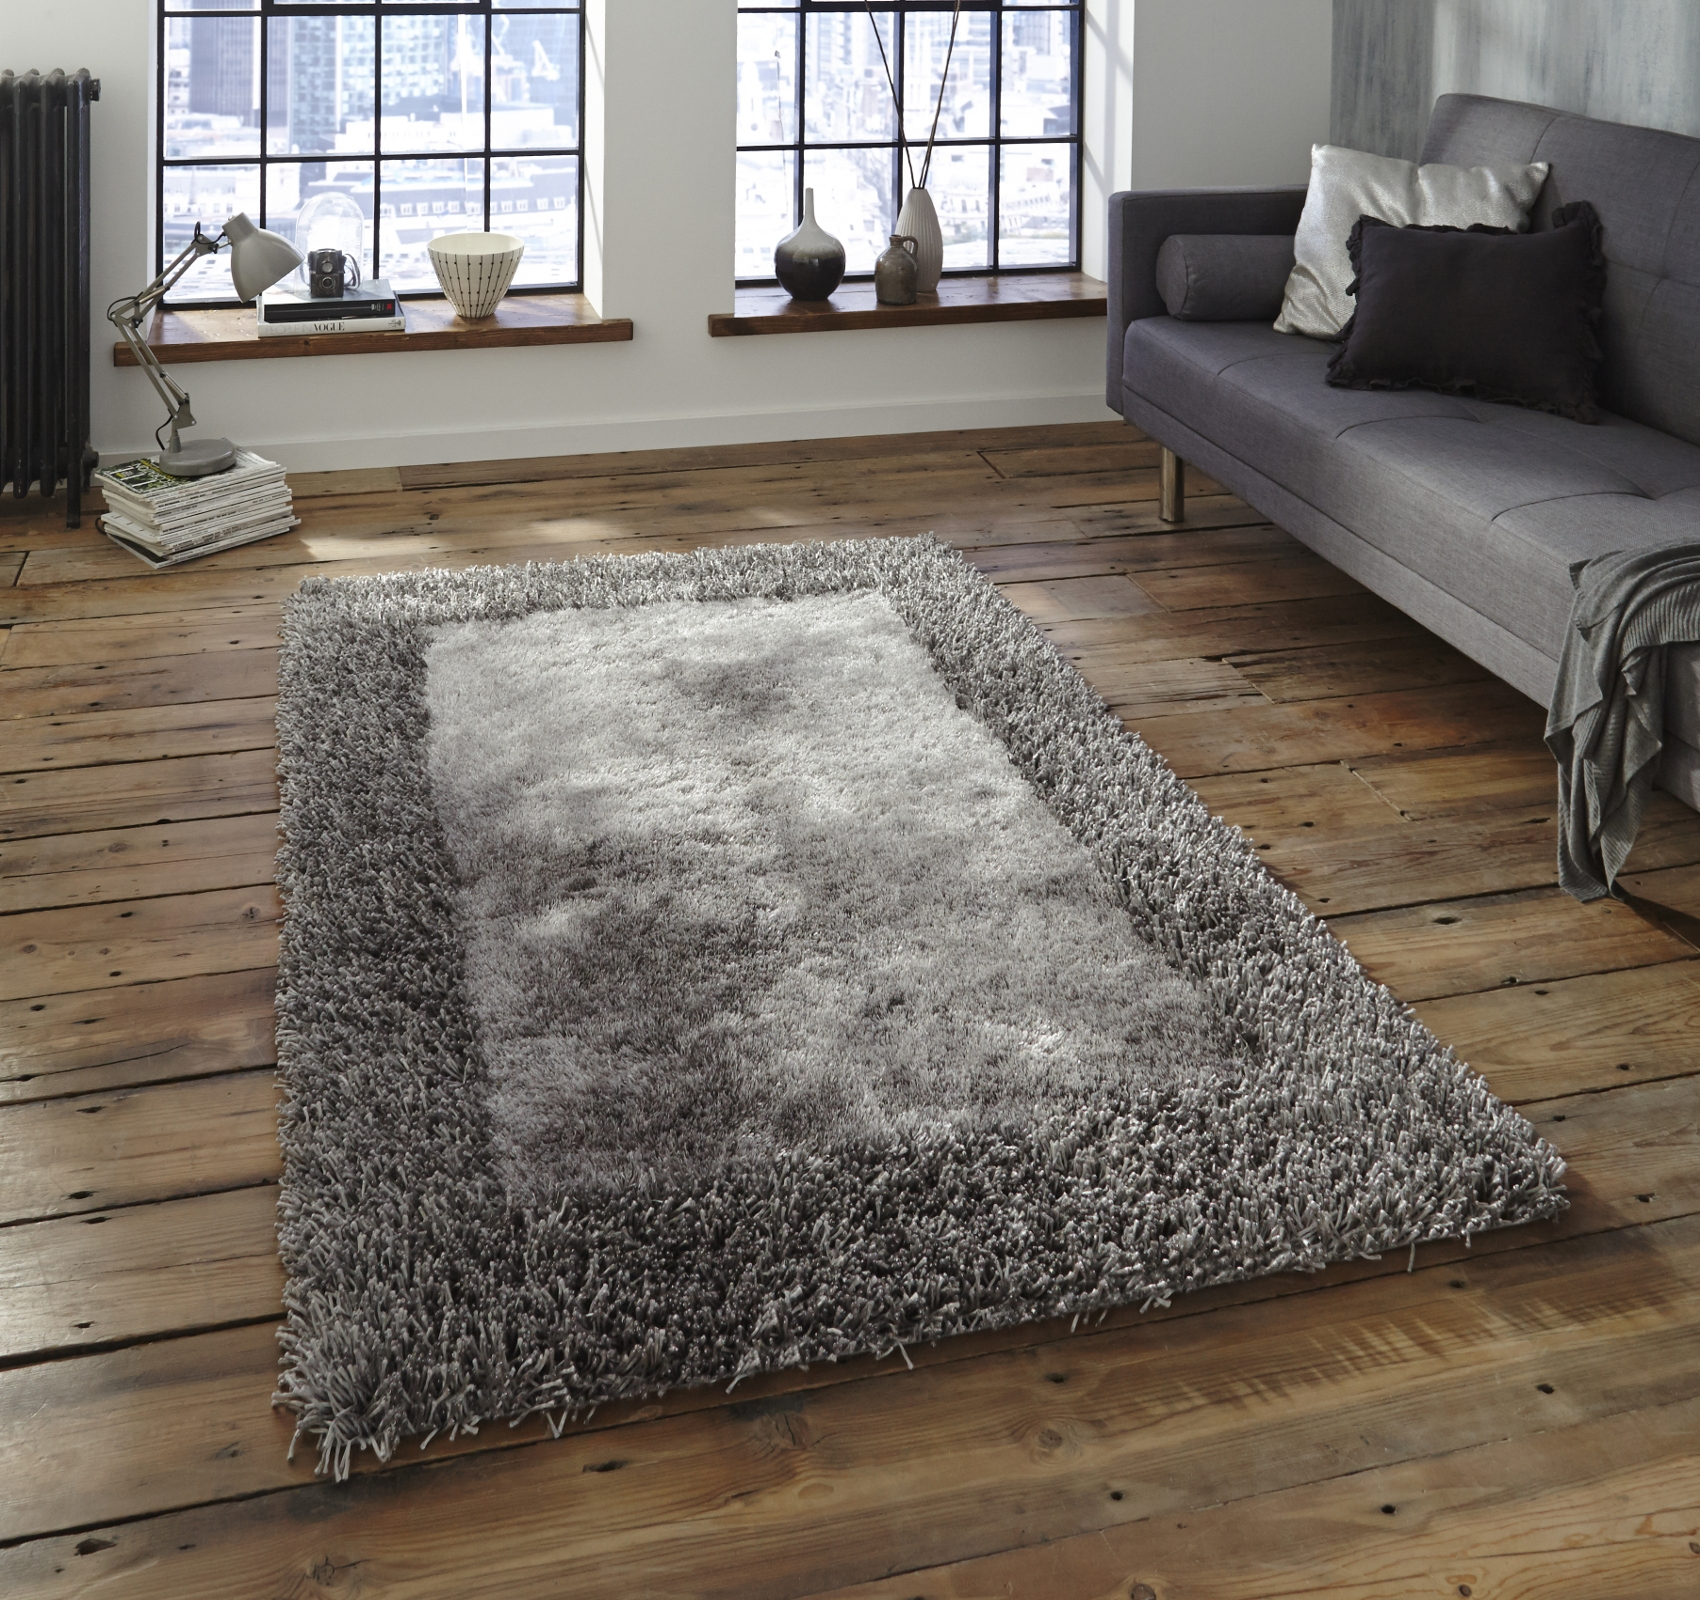 Soft Sable Shaggy Pile Rug Hand Tufted Rectangle Design Floor Mat Pertaining To Thick Rugs (Image 6 of 15)